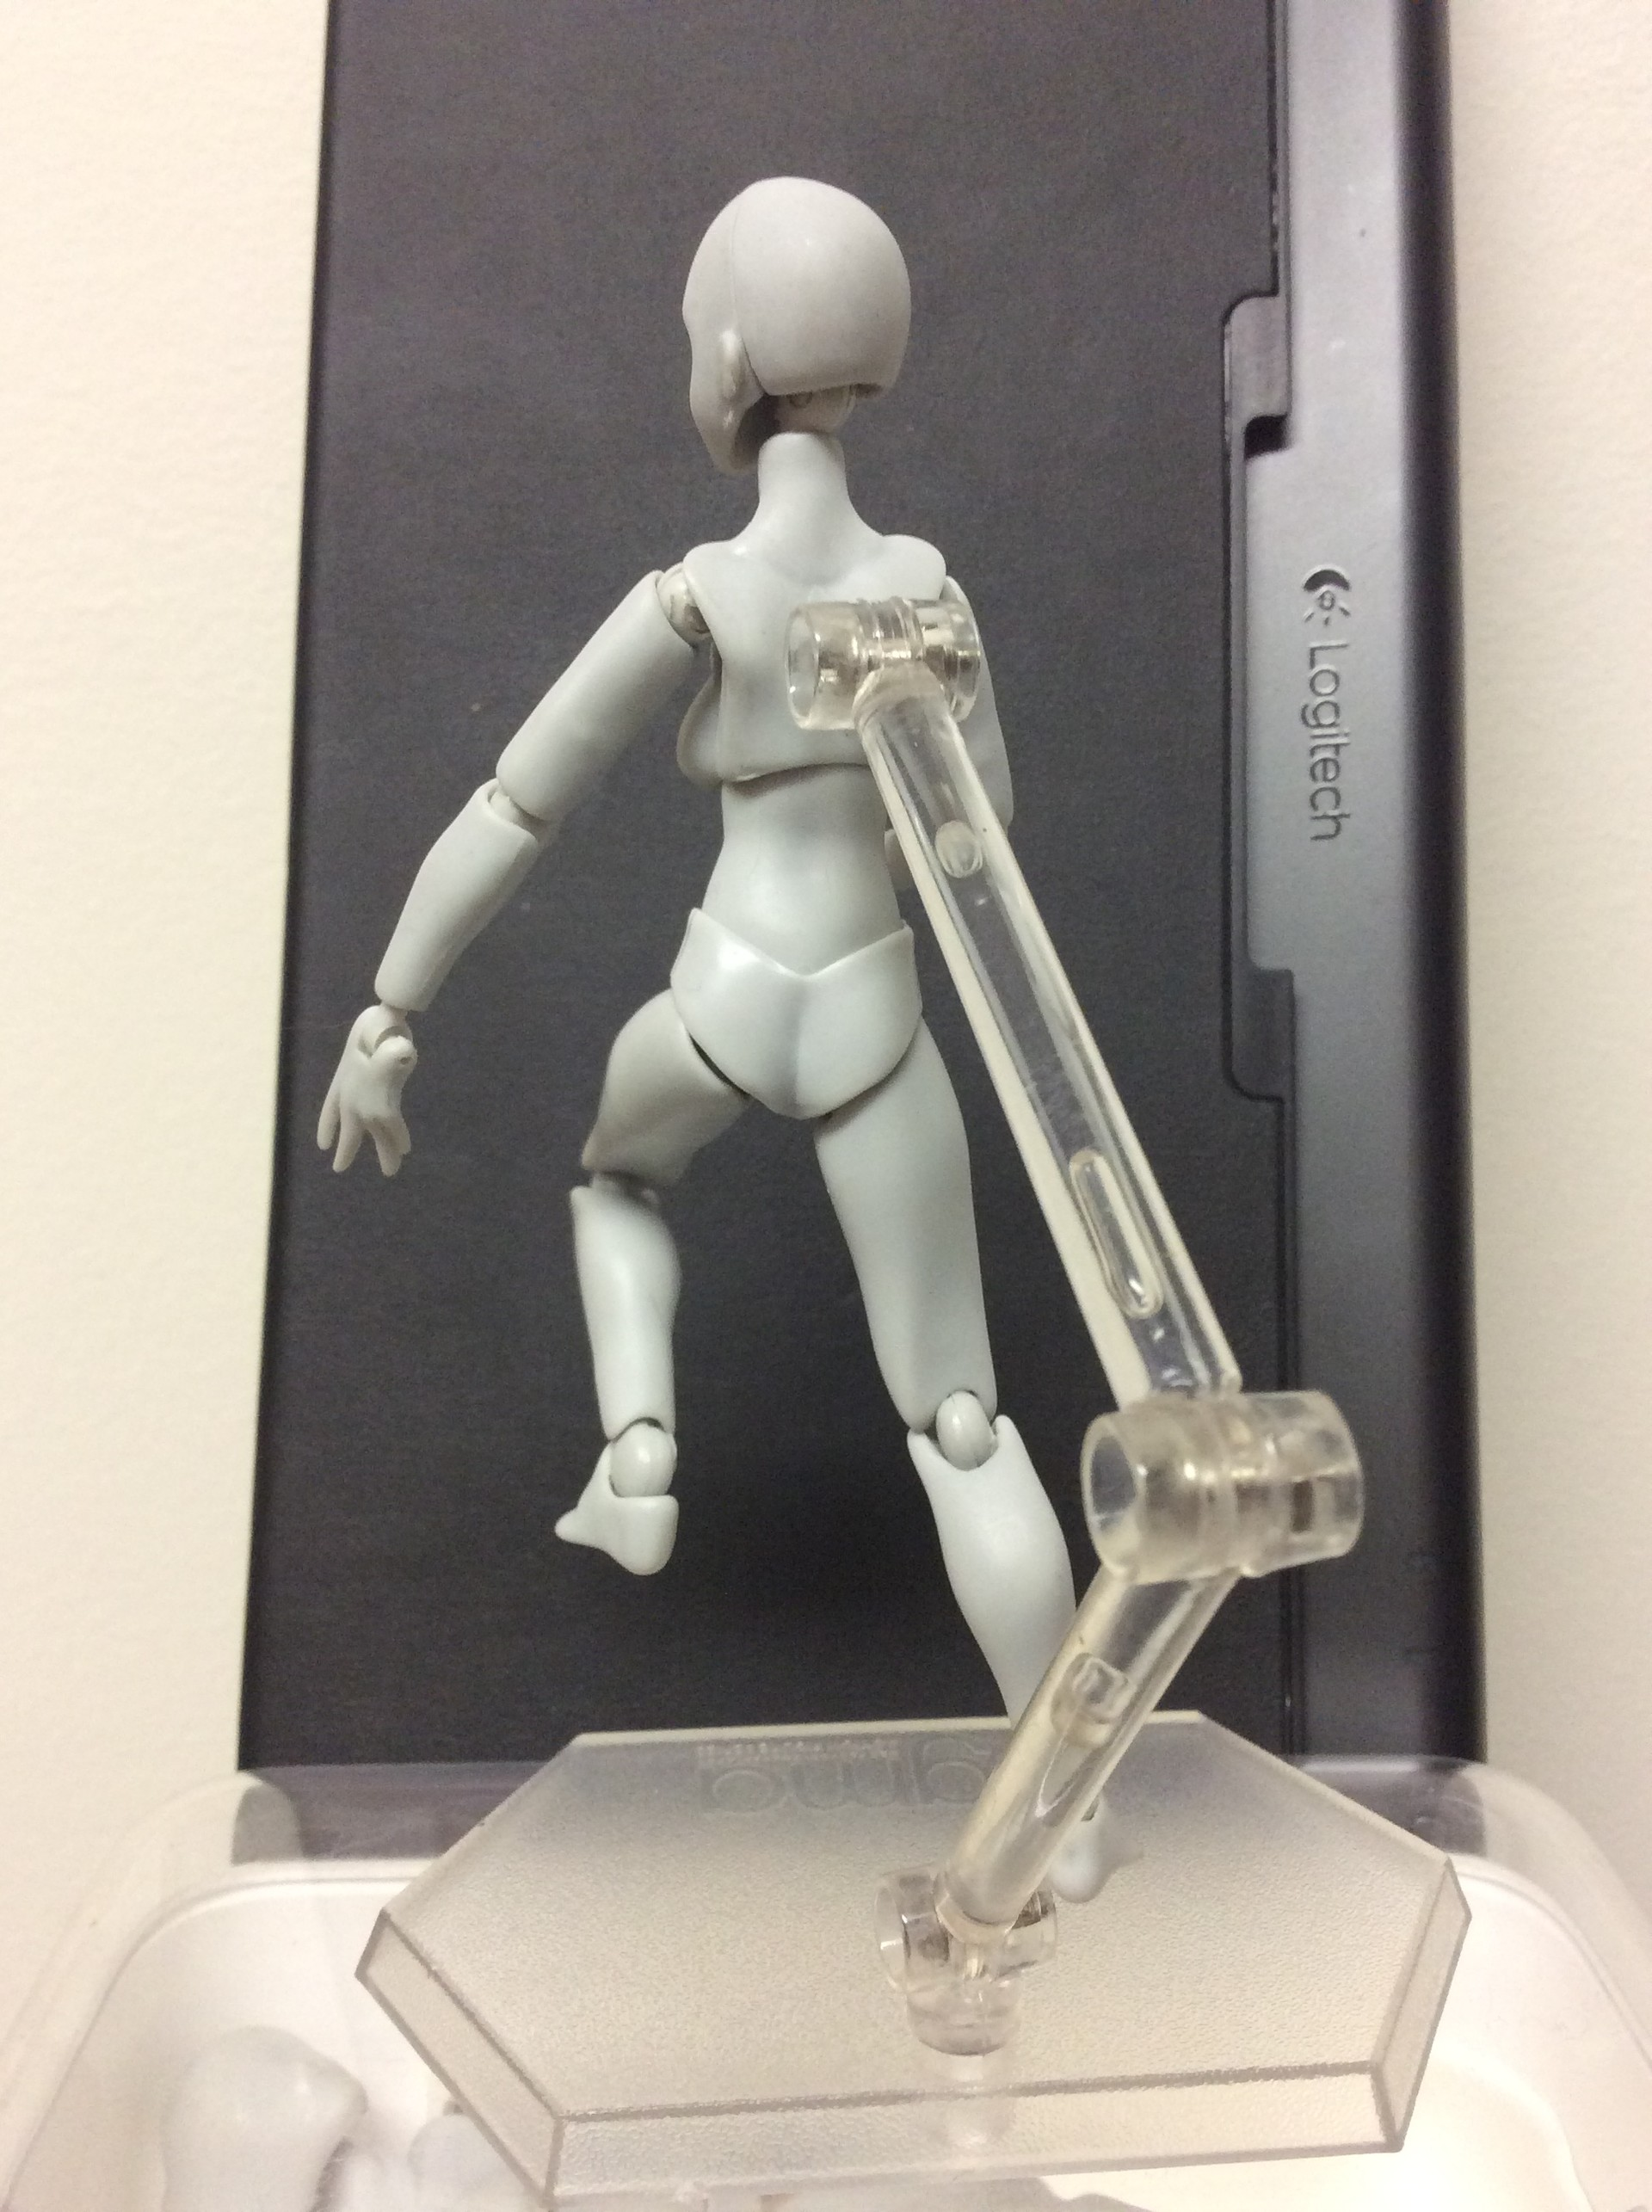 Figure pose reference (used in tandem with the other due to the support arm blocking view)